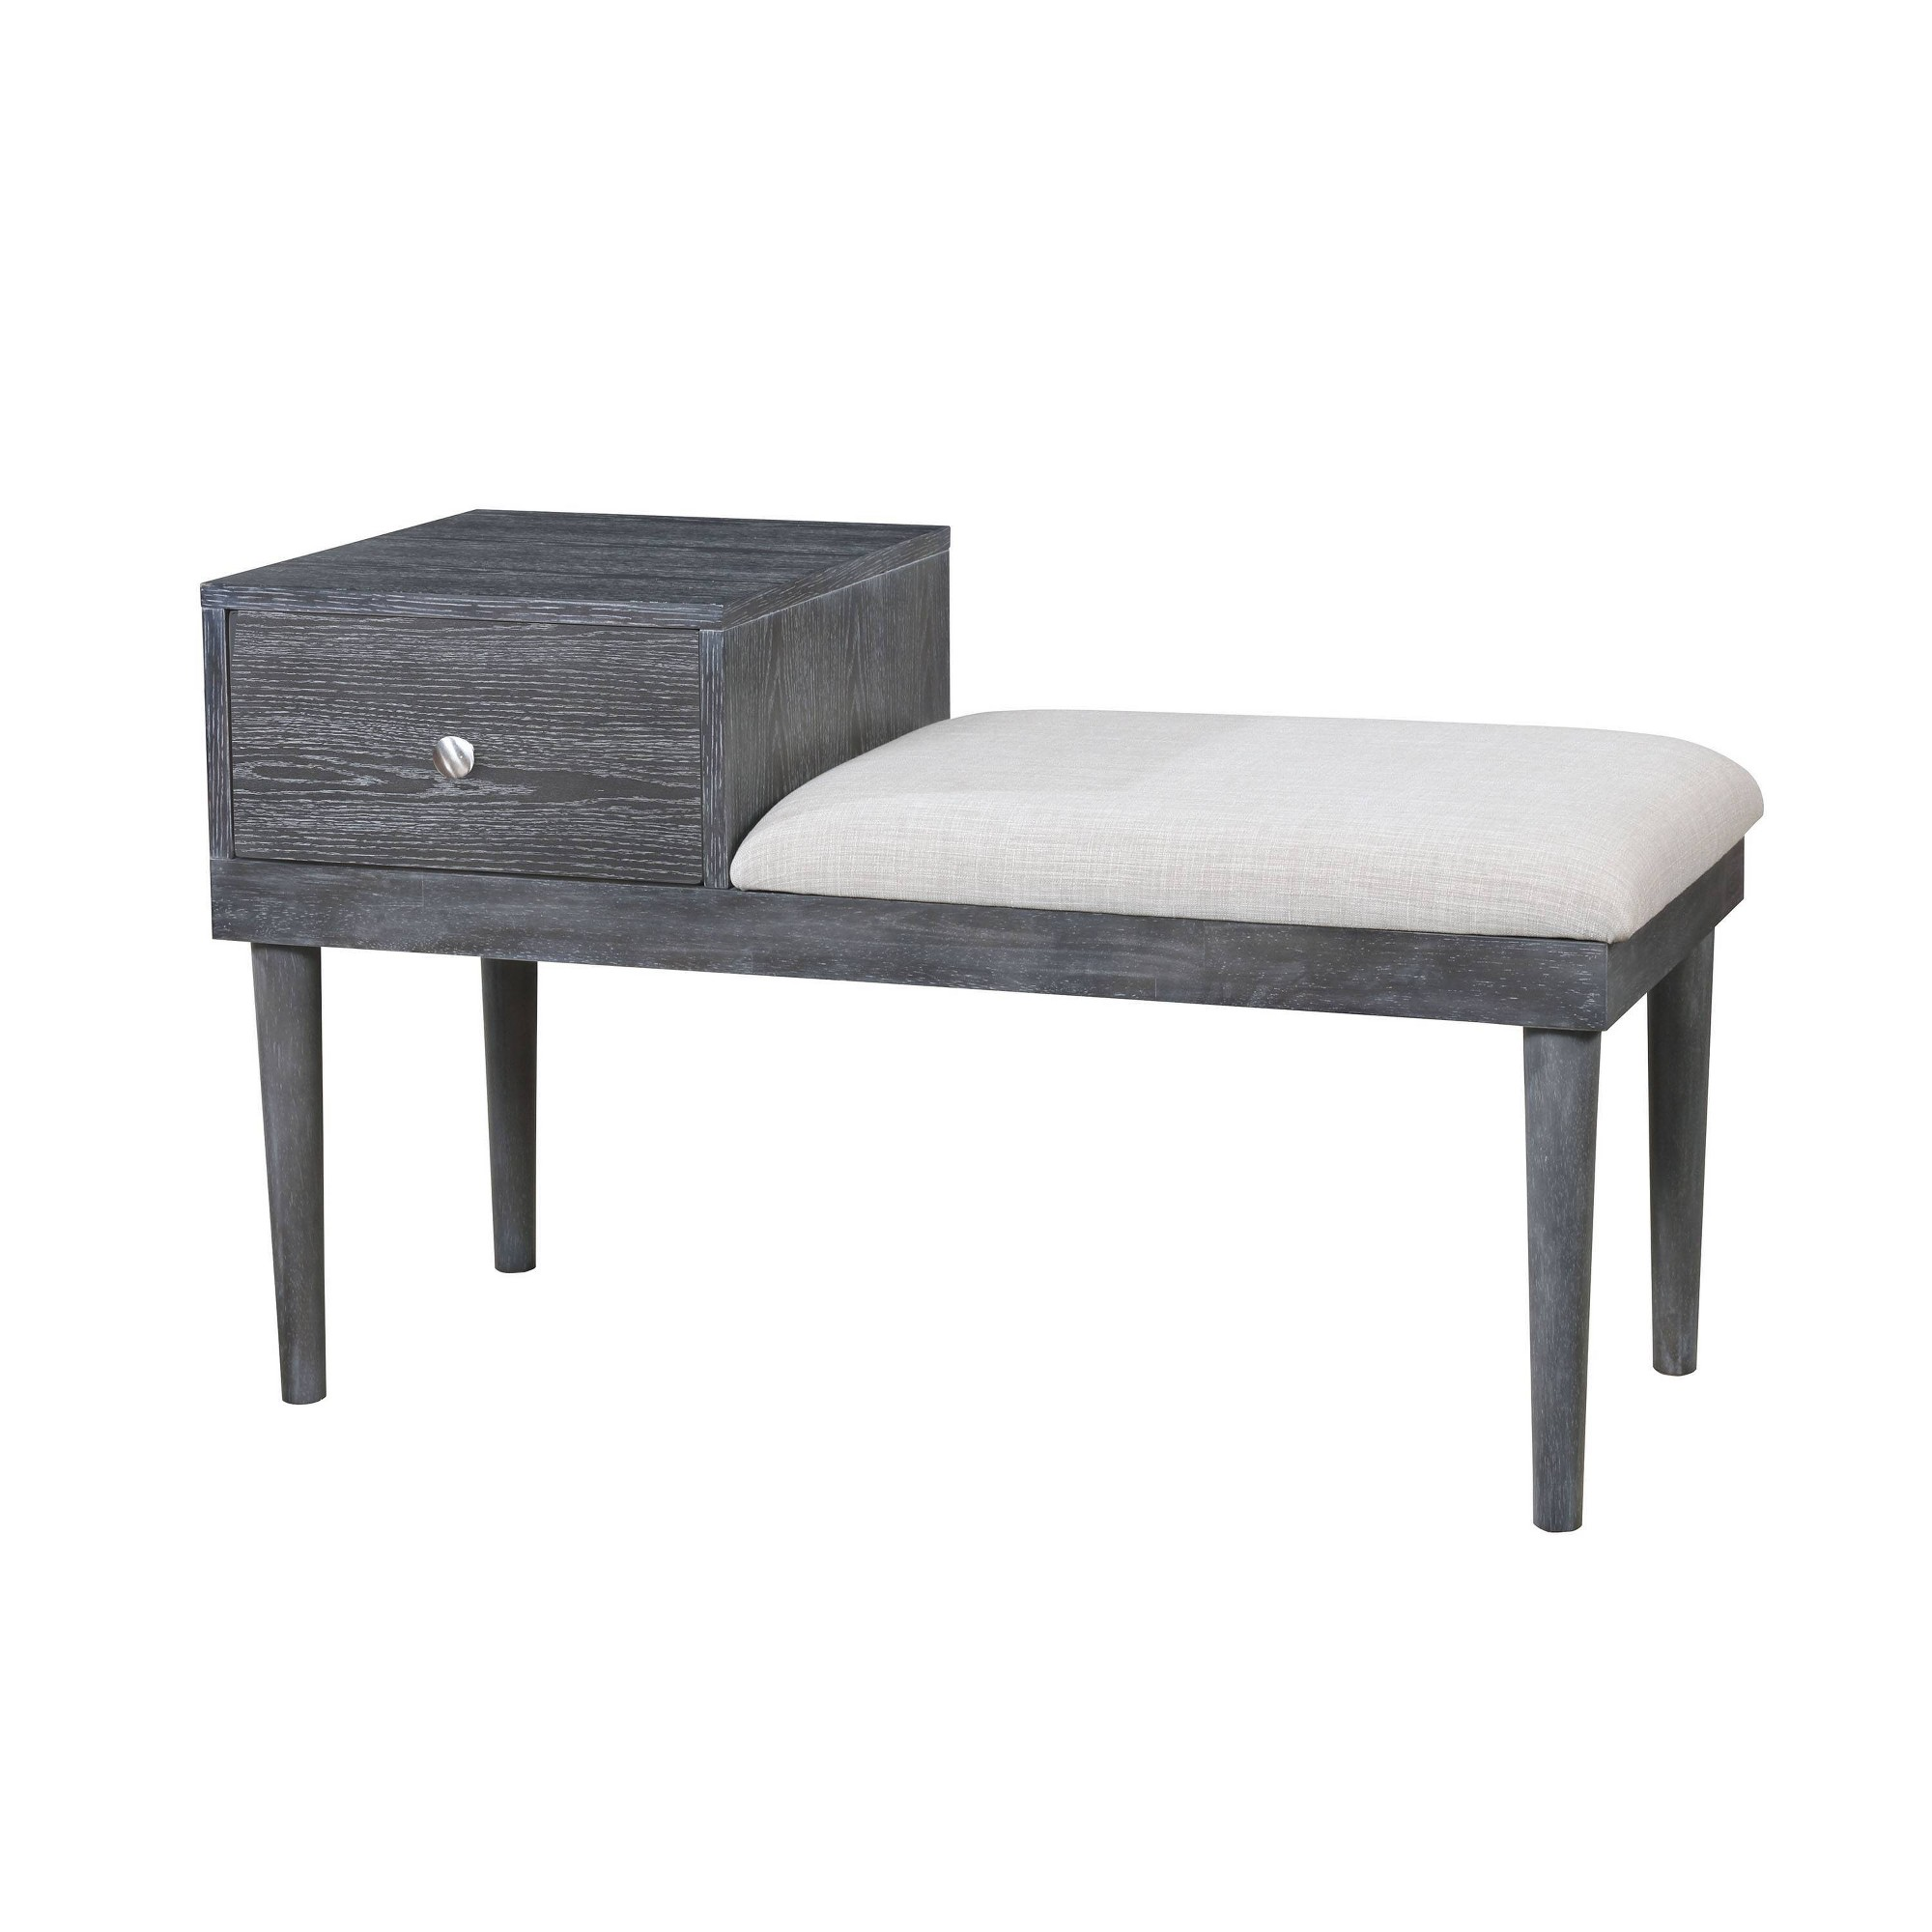 Luce Mid - Century Modern Storage Bench Weathered Gray - Homes: Inside + Out, Thundering Grey